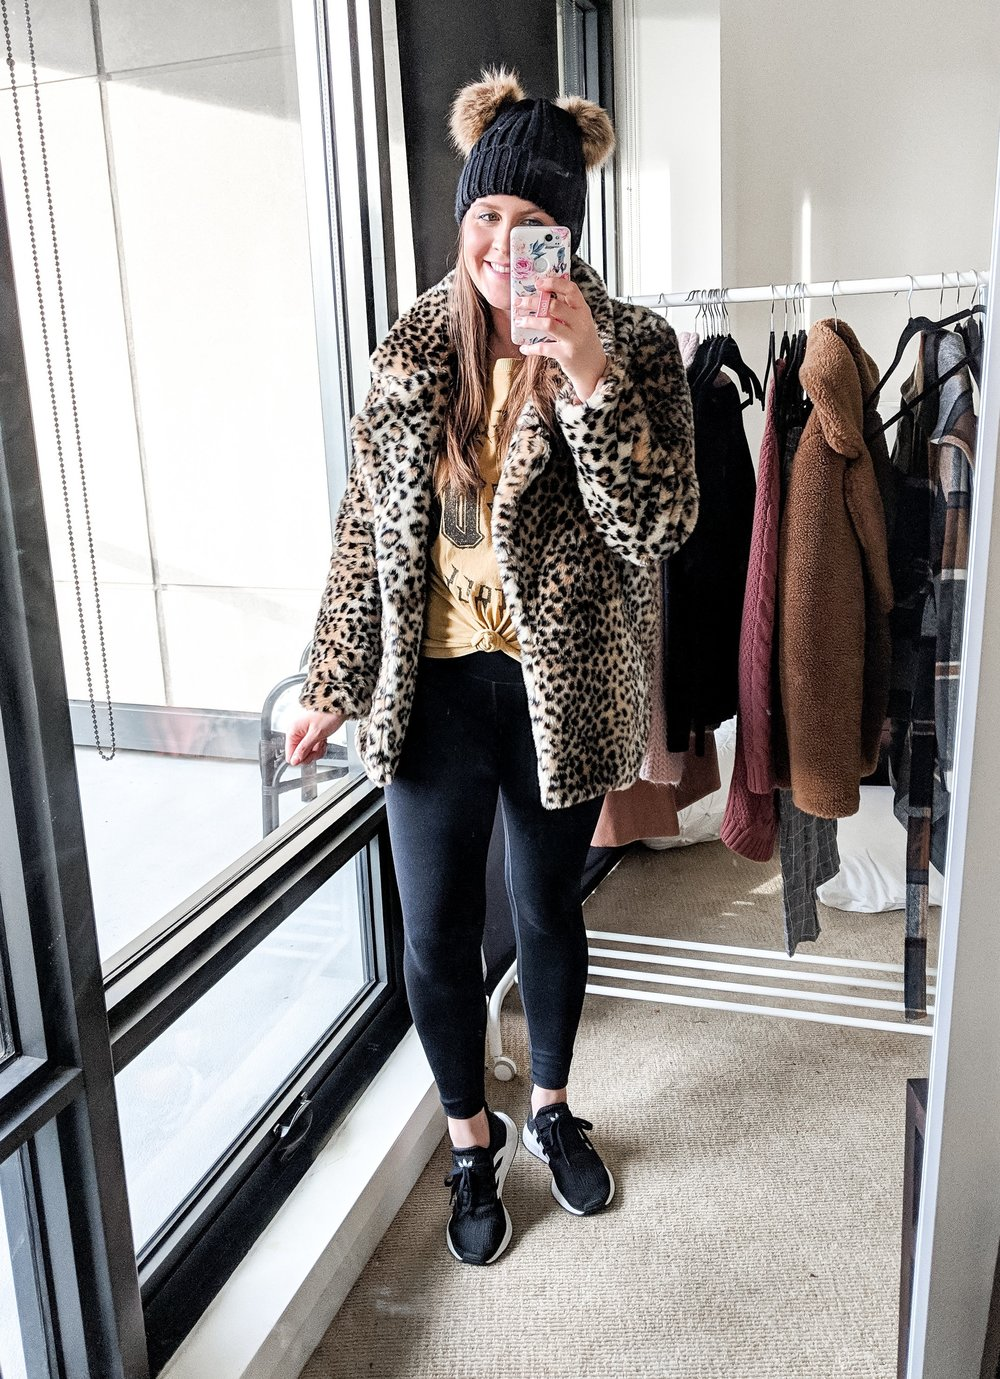 leopard%2Bfur%2Bcoat%2Bgraphic%2Btee%2Bathleisure%2Boutfit%2Bstylebyjulianne